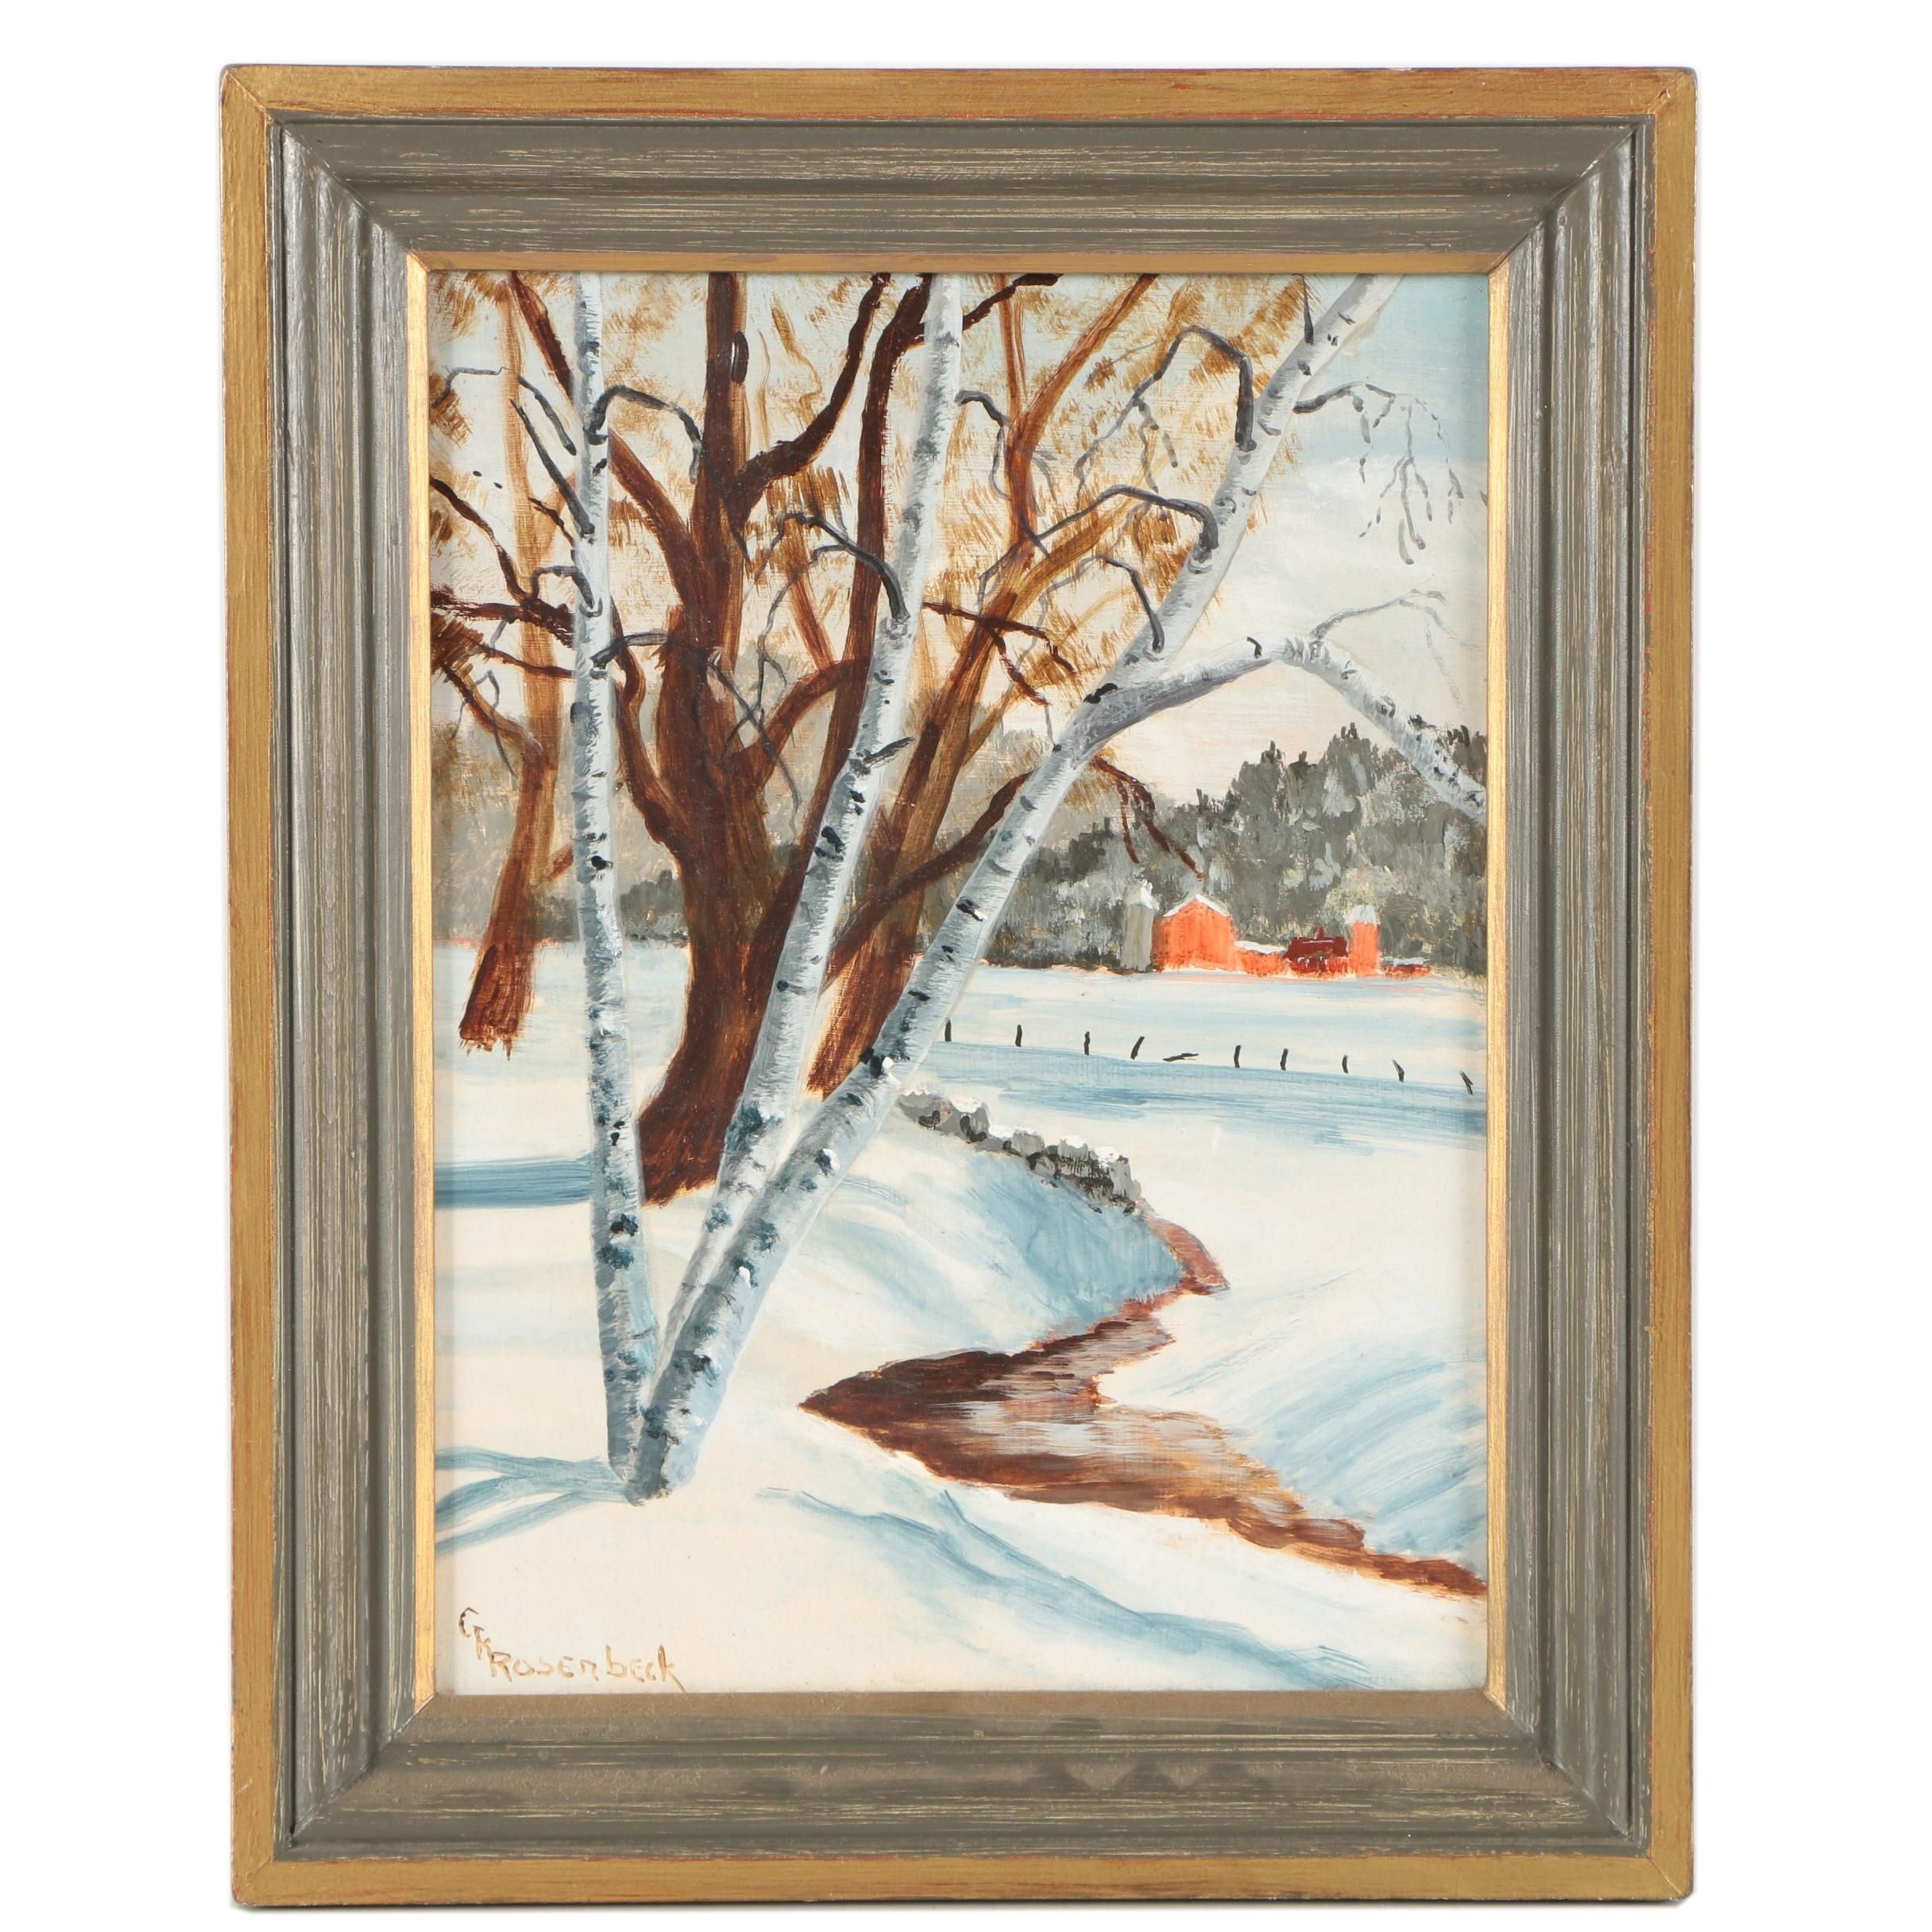 "George K. Rosenbeck Oil Painting ""Torrington, Connecticut"""